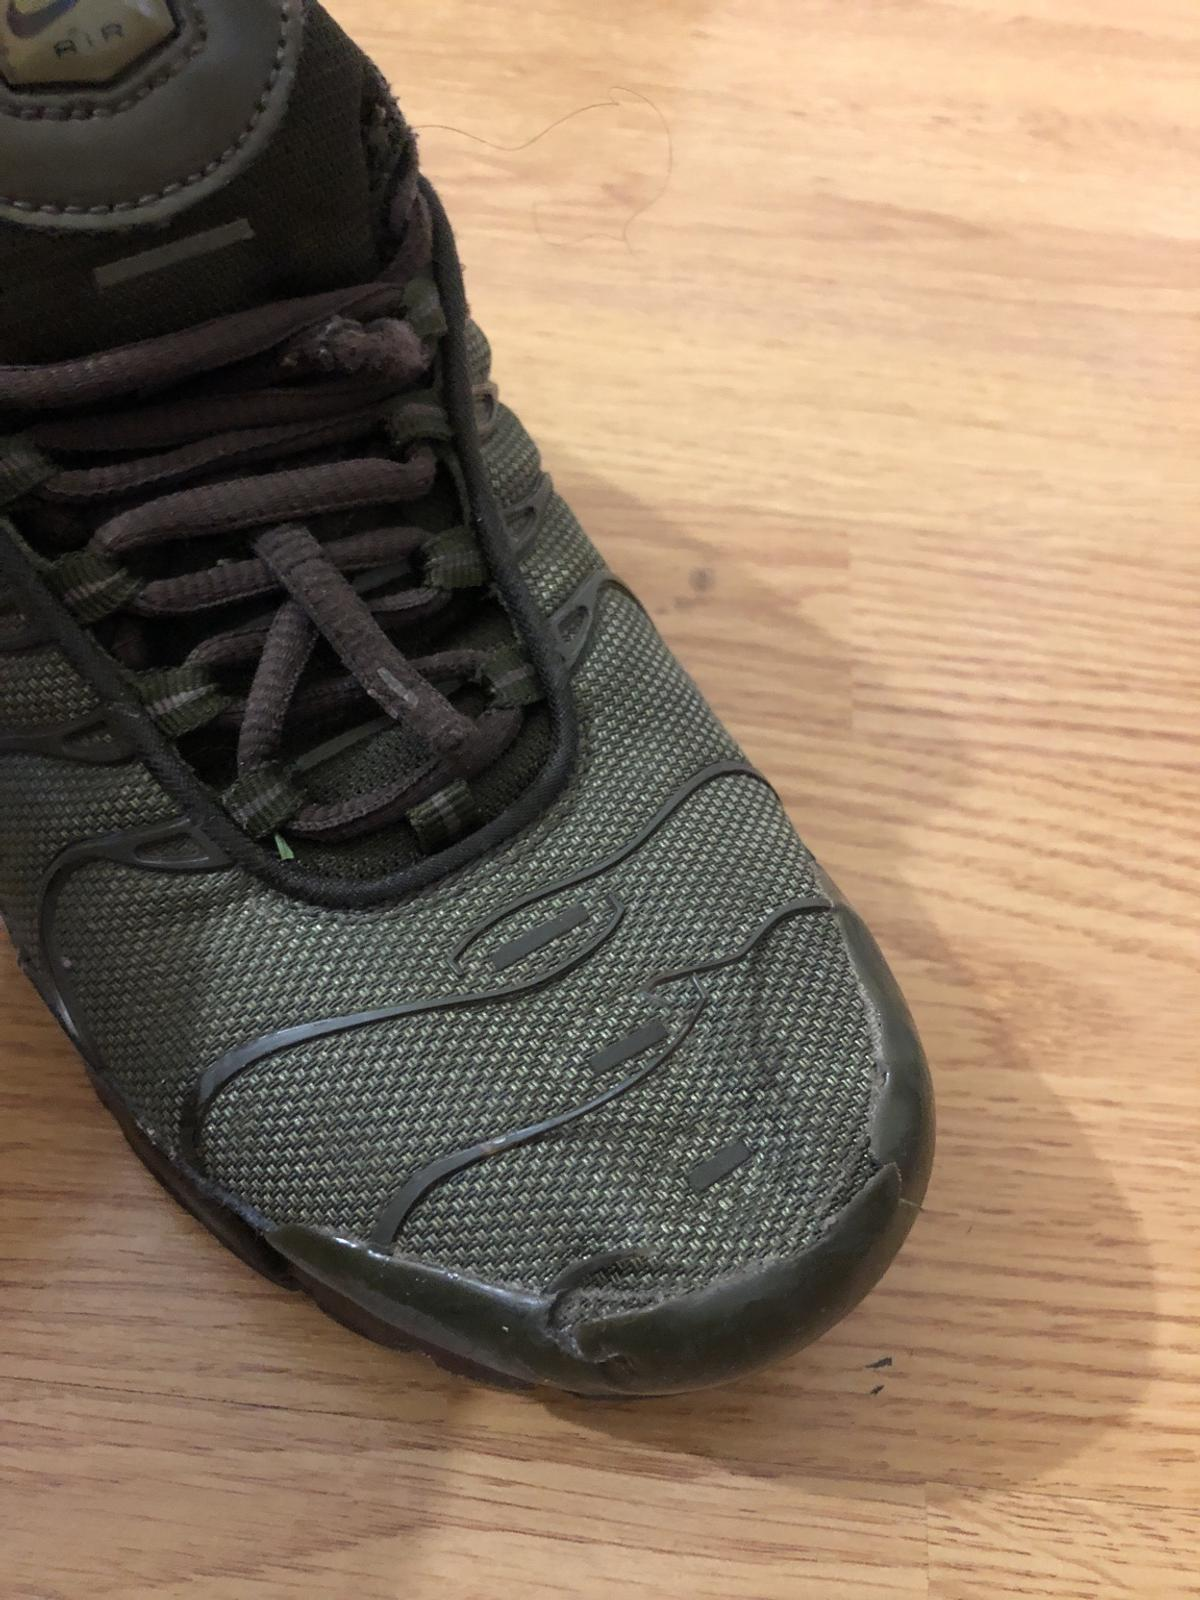 military green tns size 6. slight defects on right shoe. laces need to be replaced  collection only ec1v 07583741005